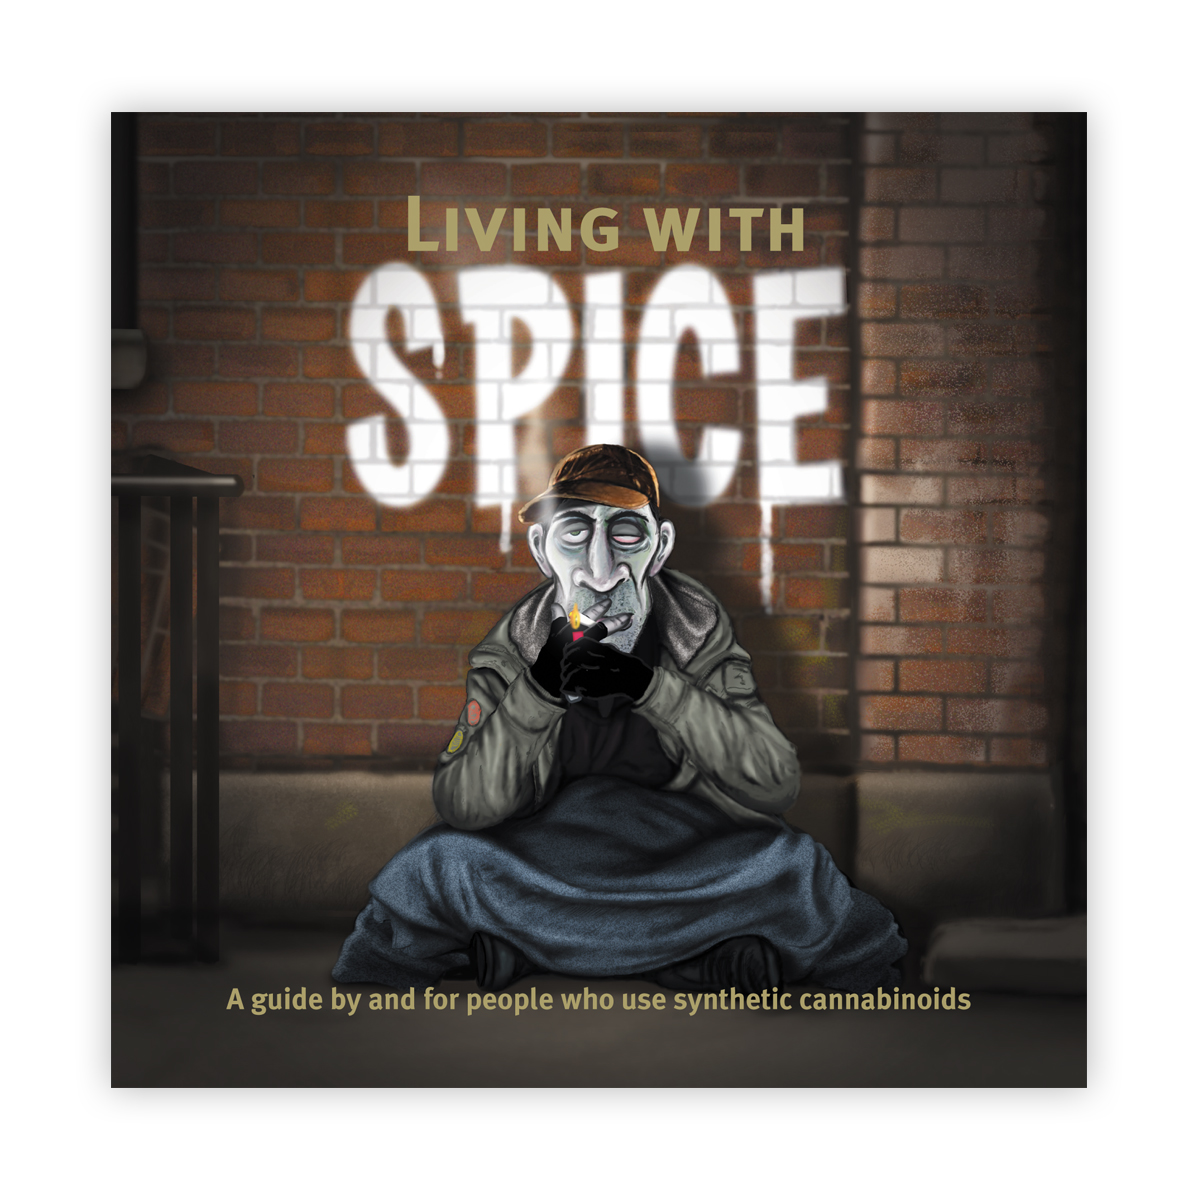 Living with spice